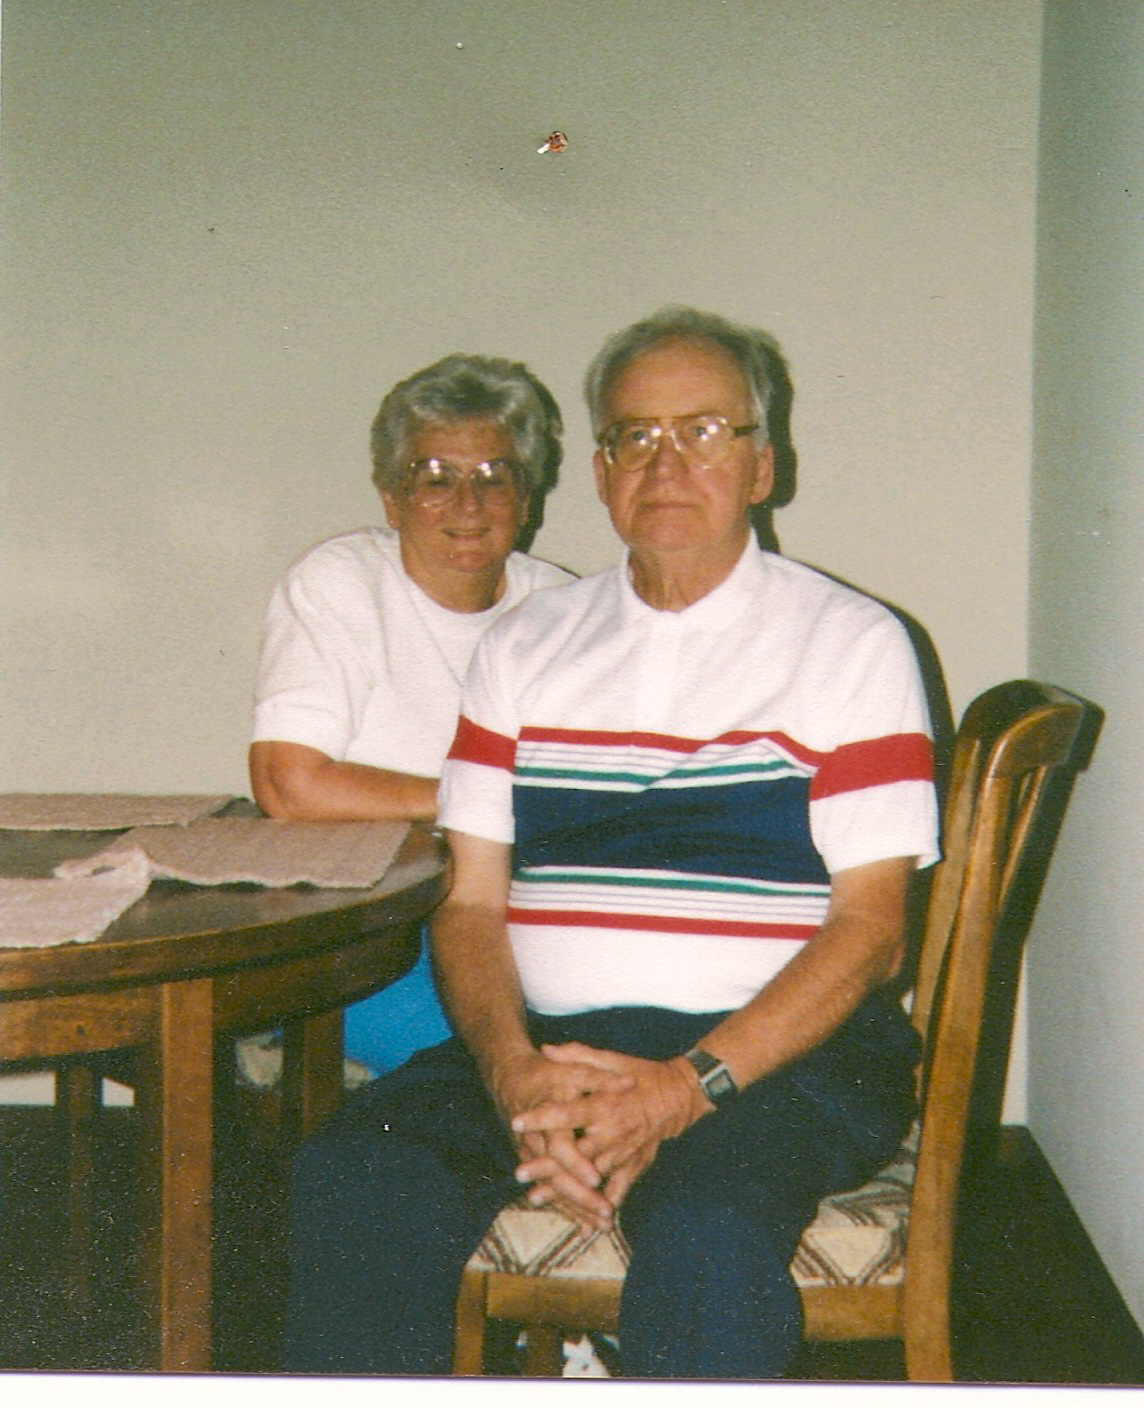 Mom and Dad.... Margery and George - Together again. Photo: August 1991. I miss you both. David..